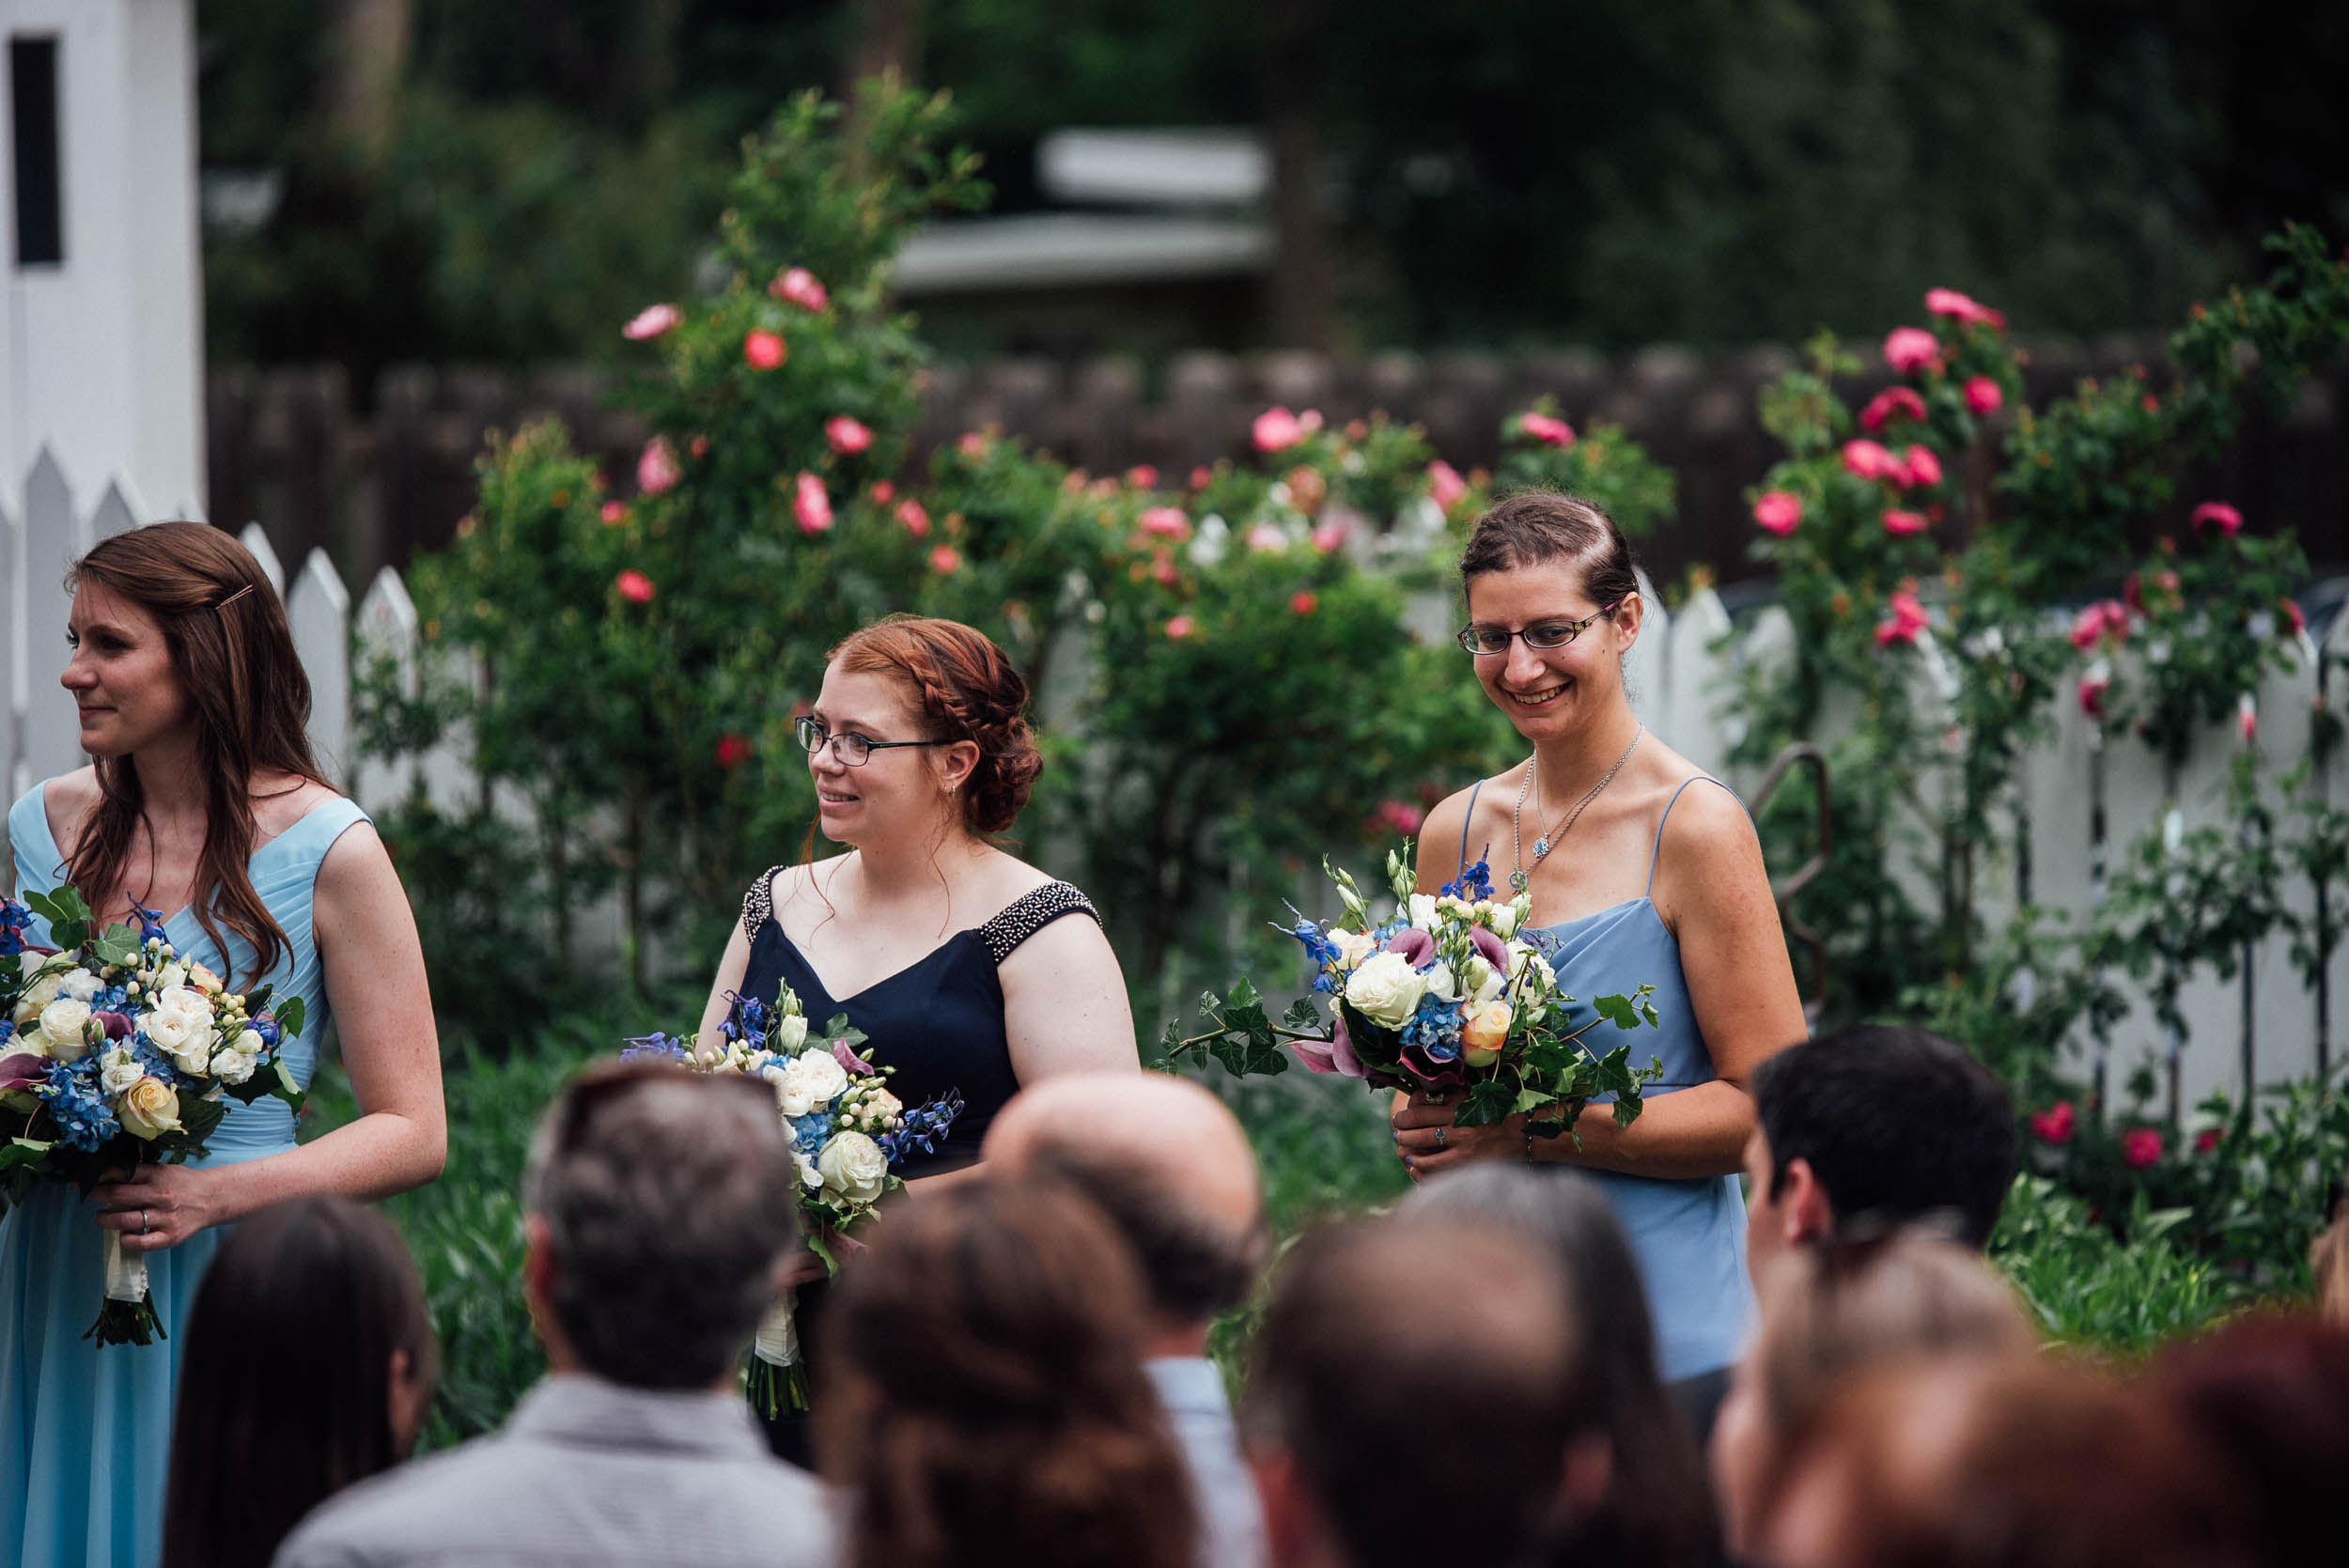 Colorado-Backyard-Wedding-Photographer-40.jpg